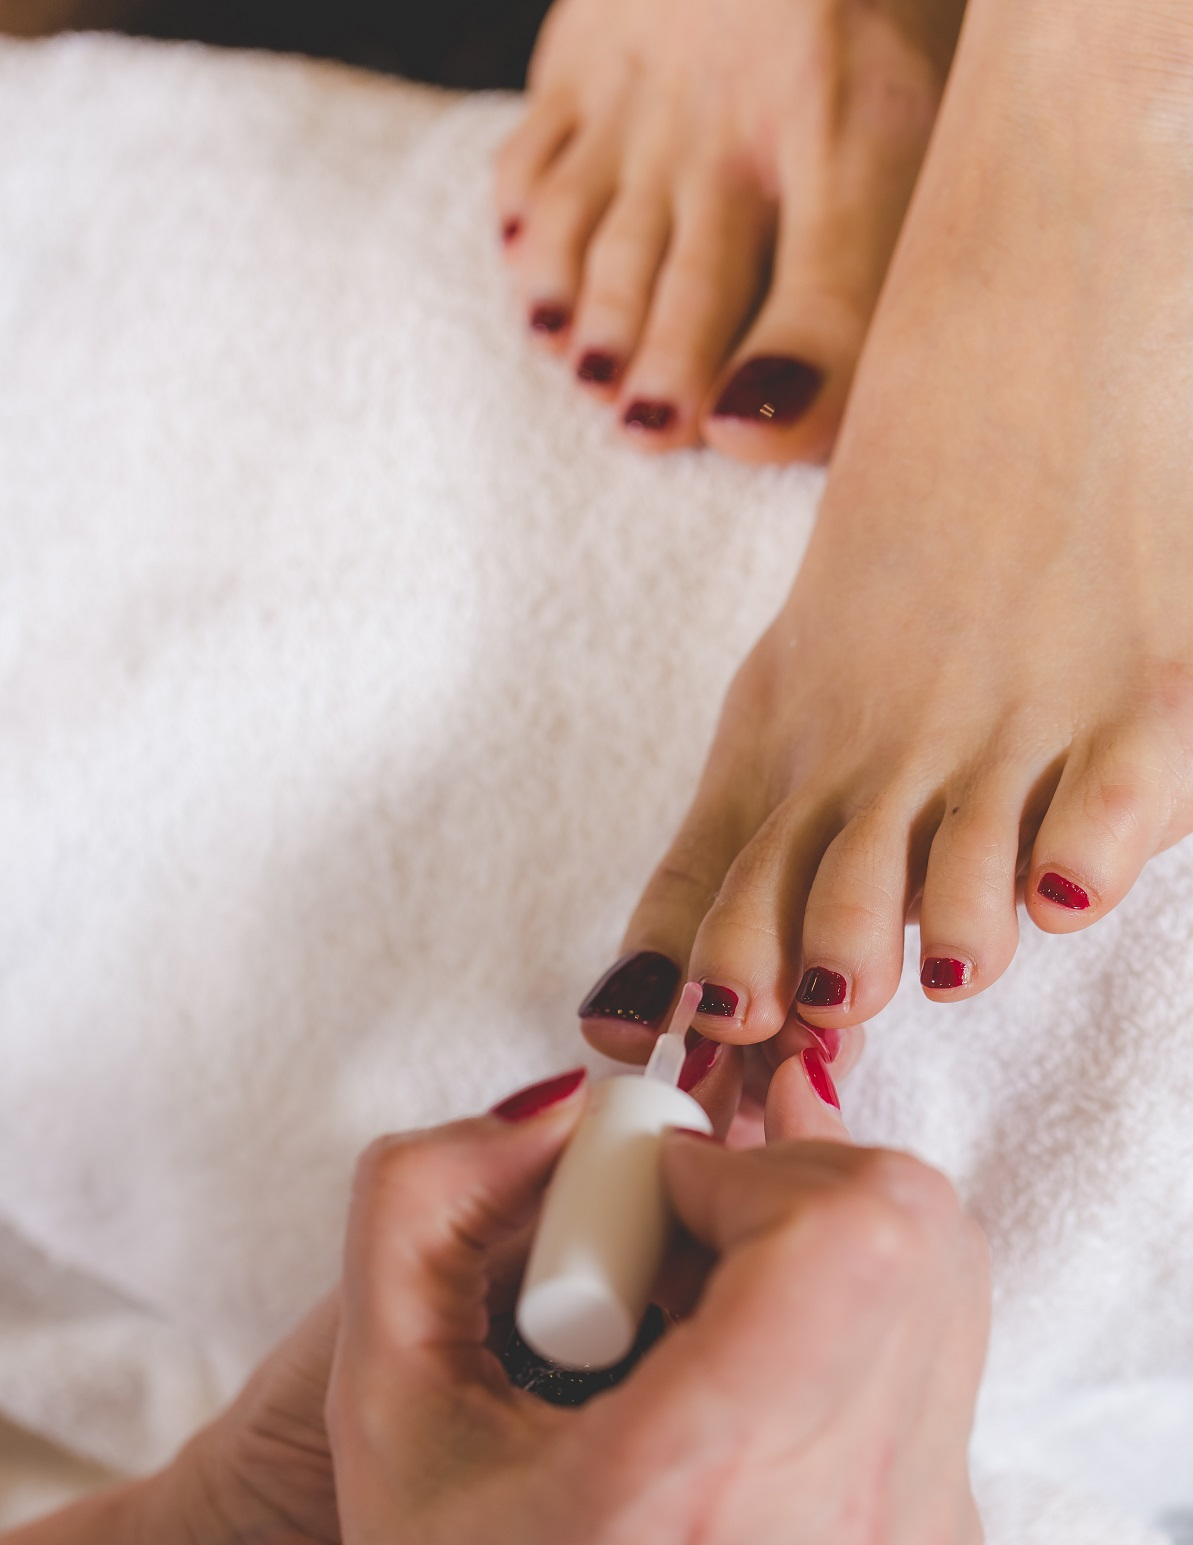 Our Milton Spa specializes in pedicure and general foot care for diabetic feet.